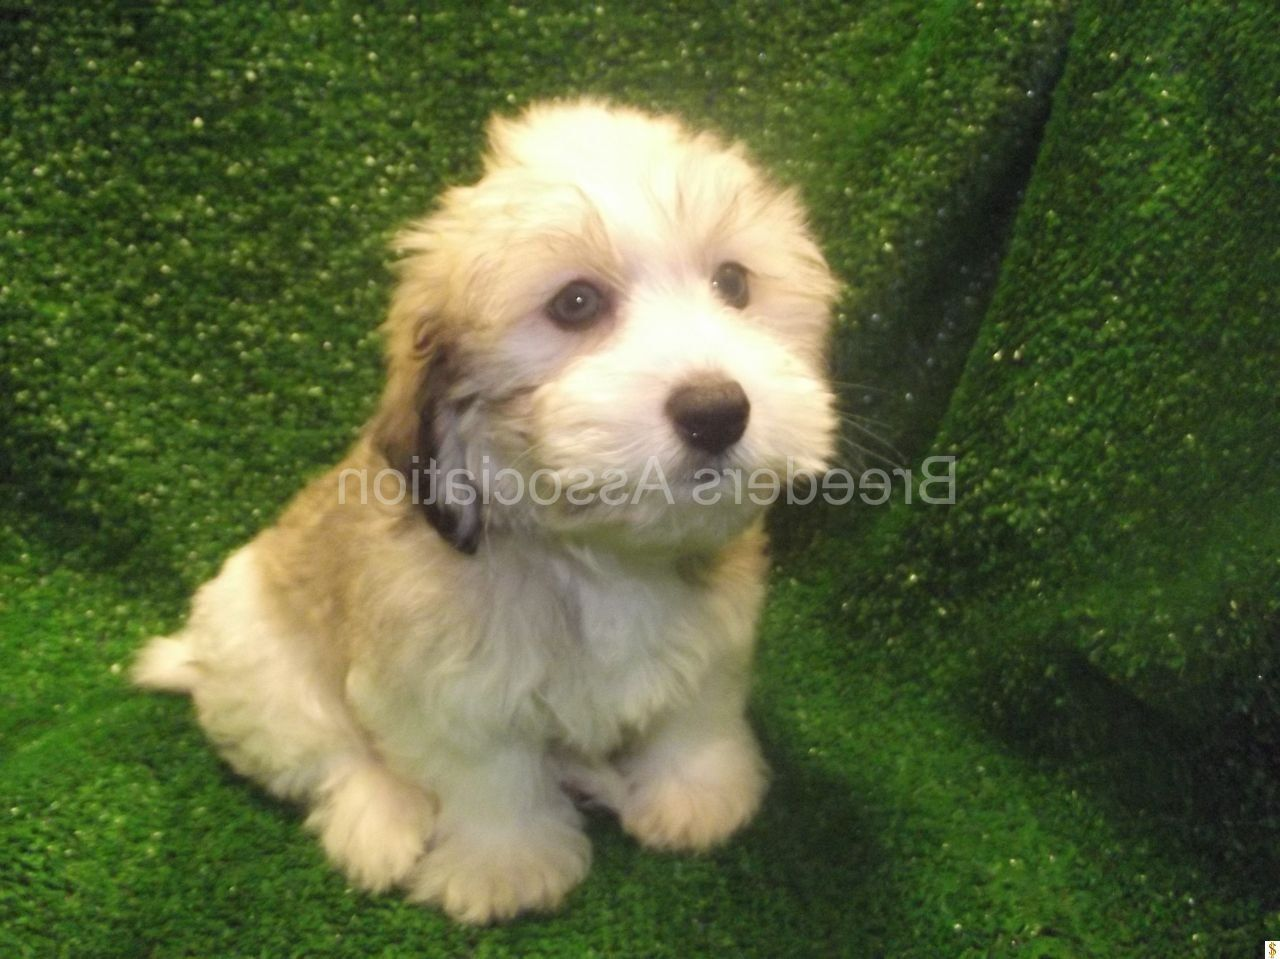 Black Havanese Puppies For Sale Wallpaper The Witty Dog Puppies Havanese Puppies Cute Puppies